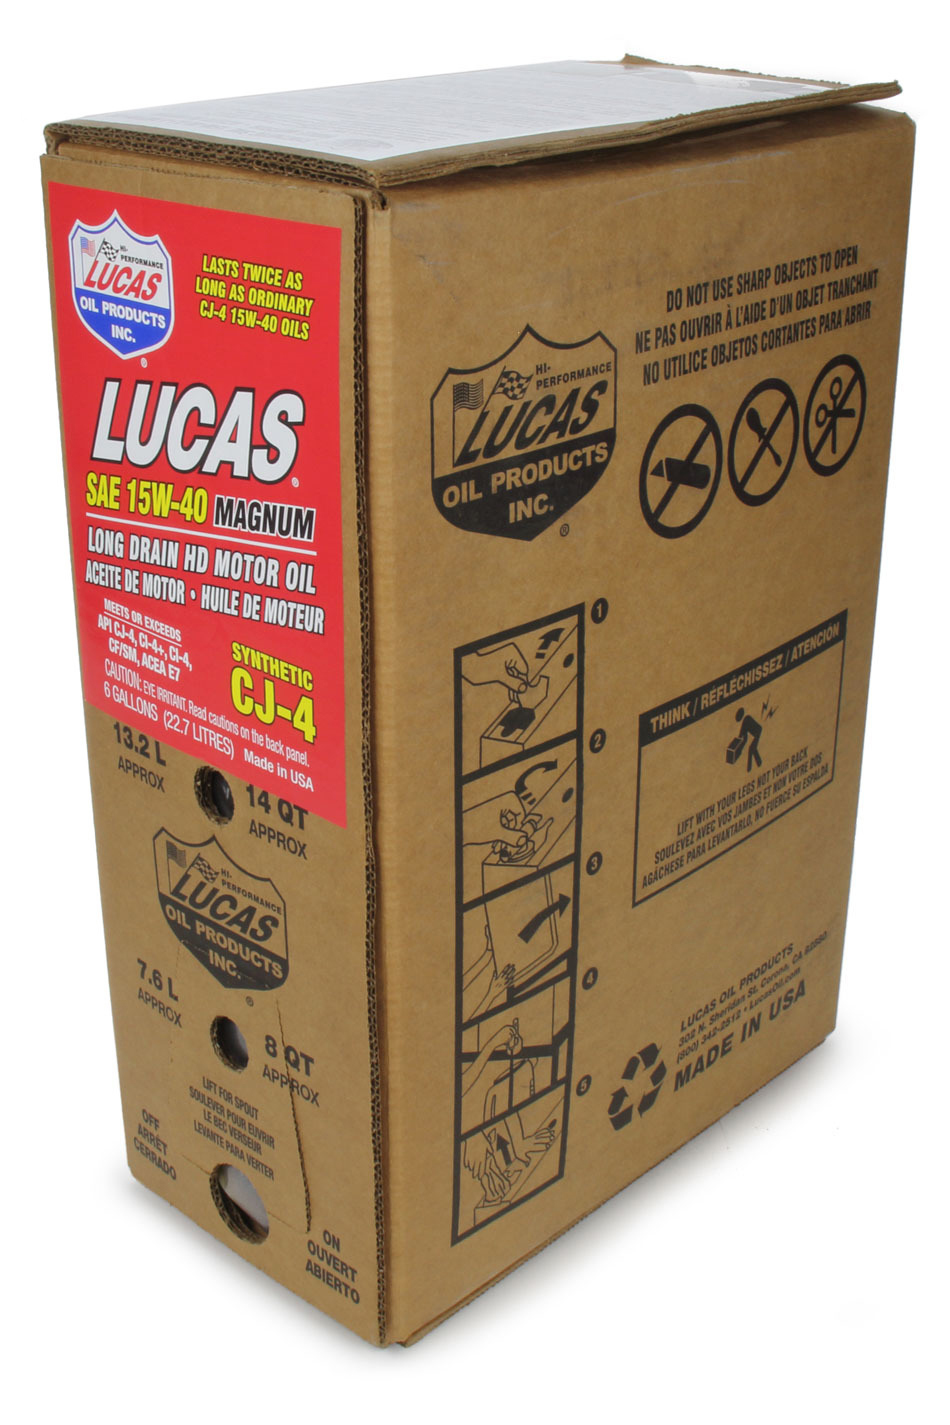 Synthetic SAE 15W40 CJ-4 Oil 6 Gallon Bag In Box